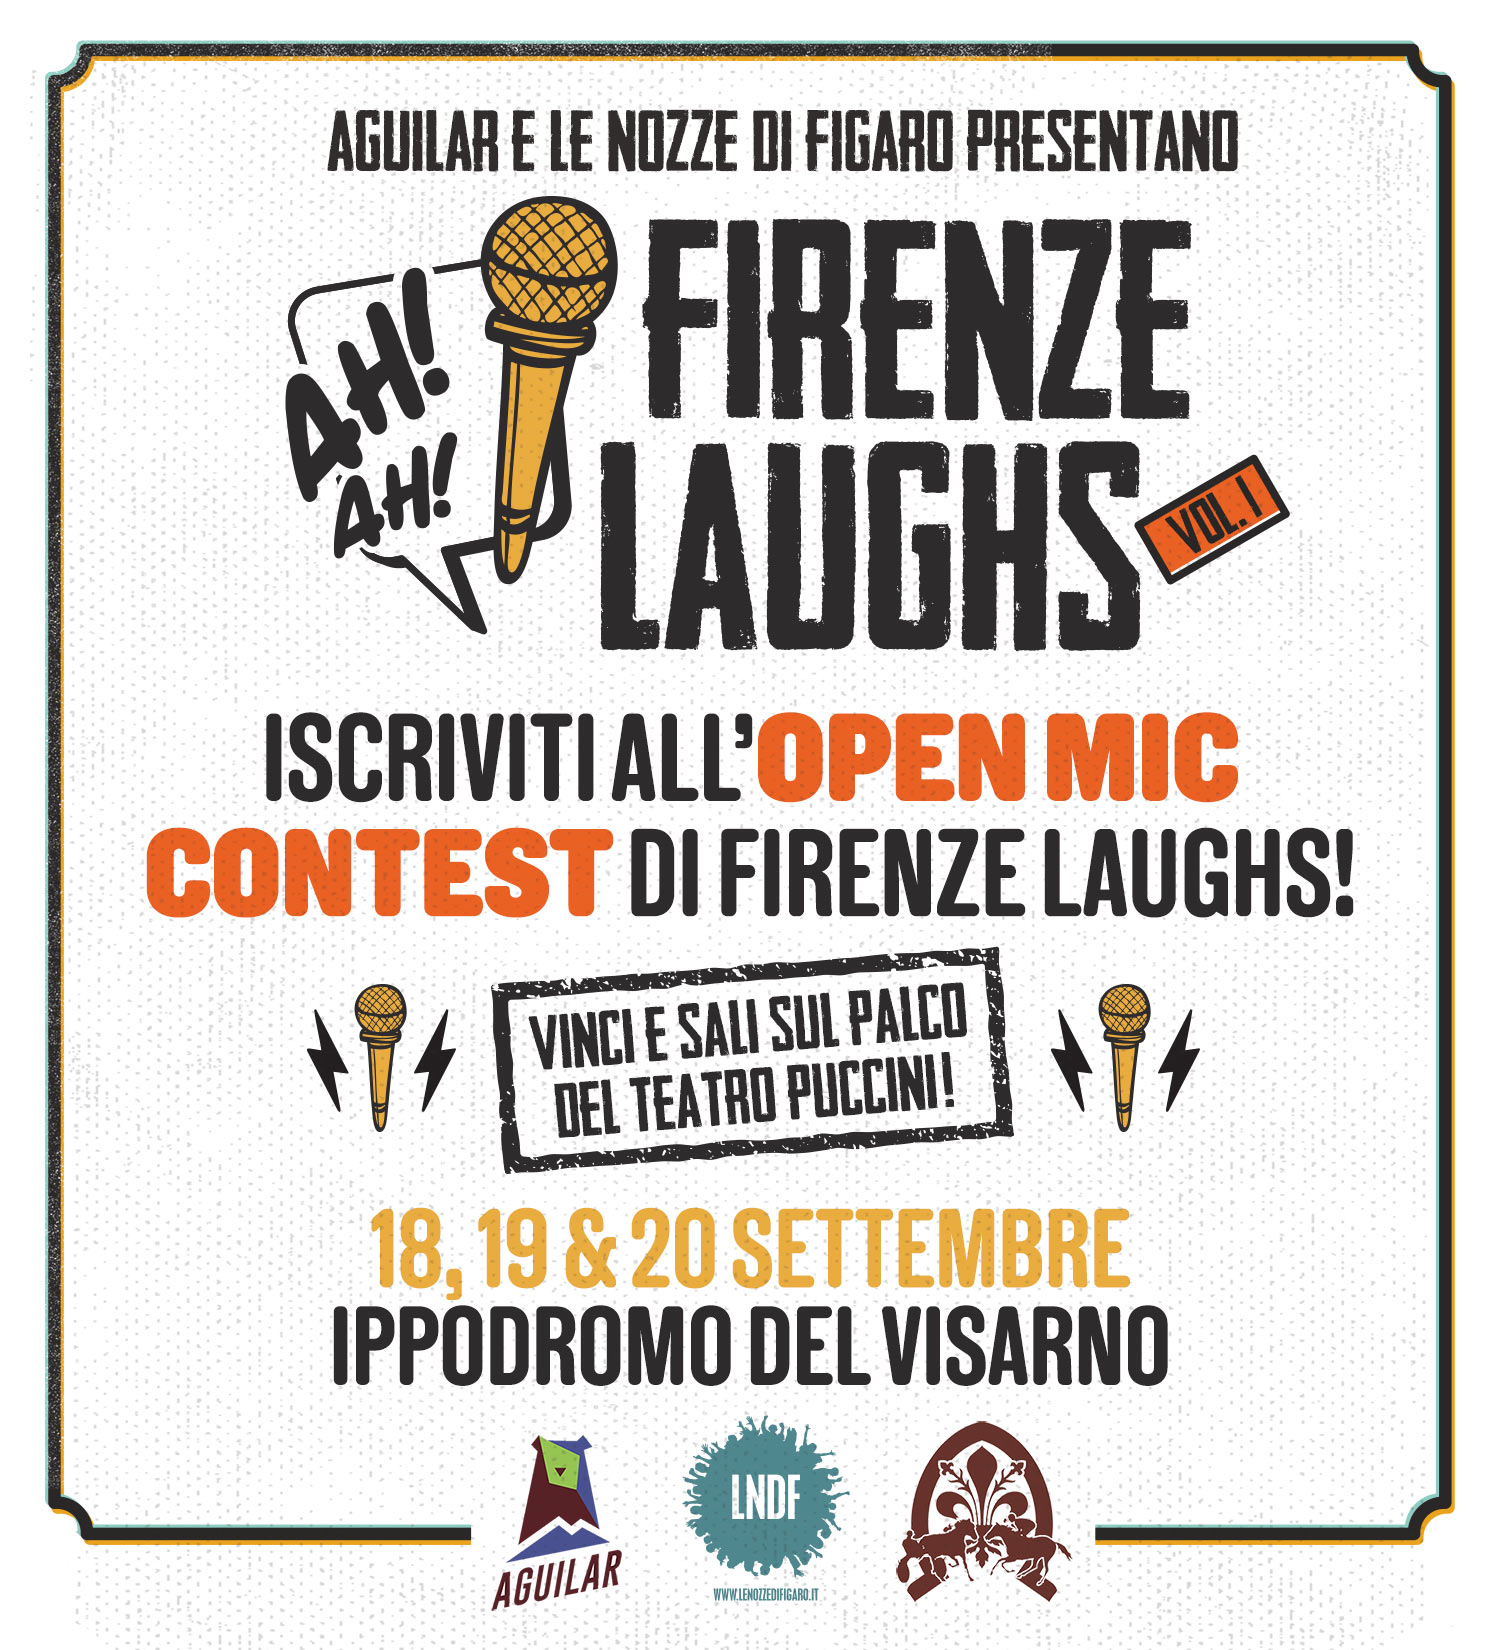 Firenze Laughs Open Mic Contest